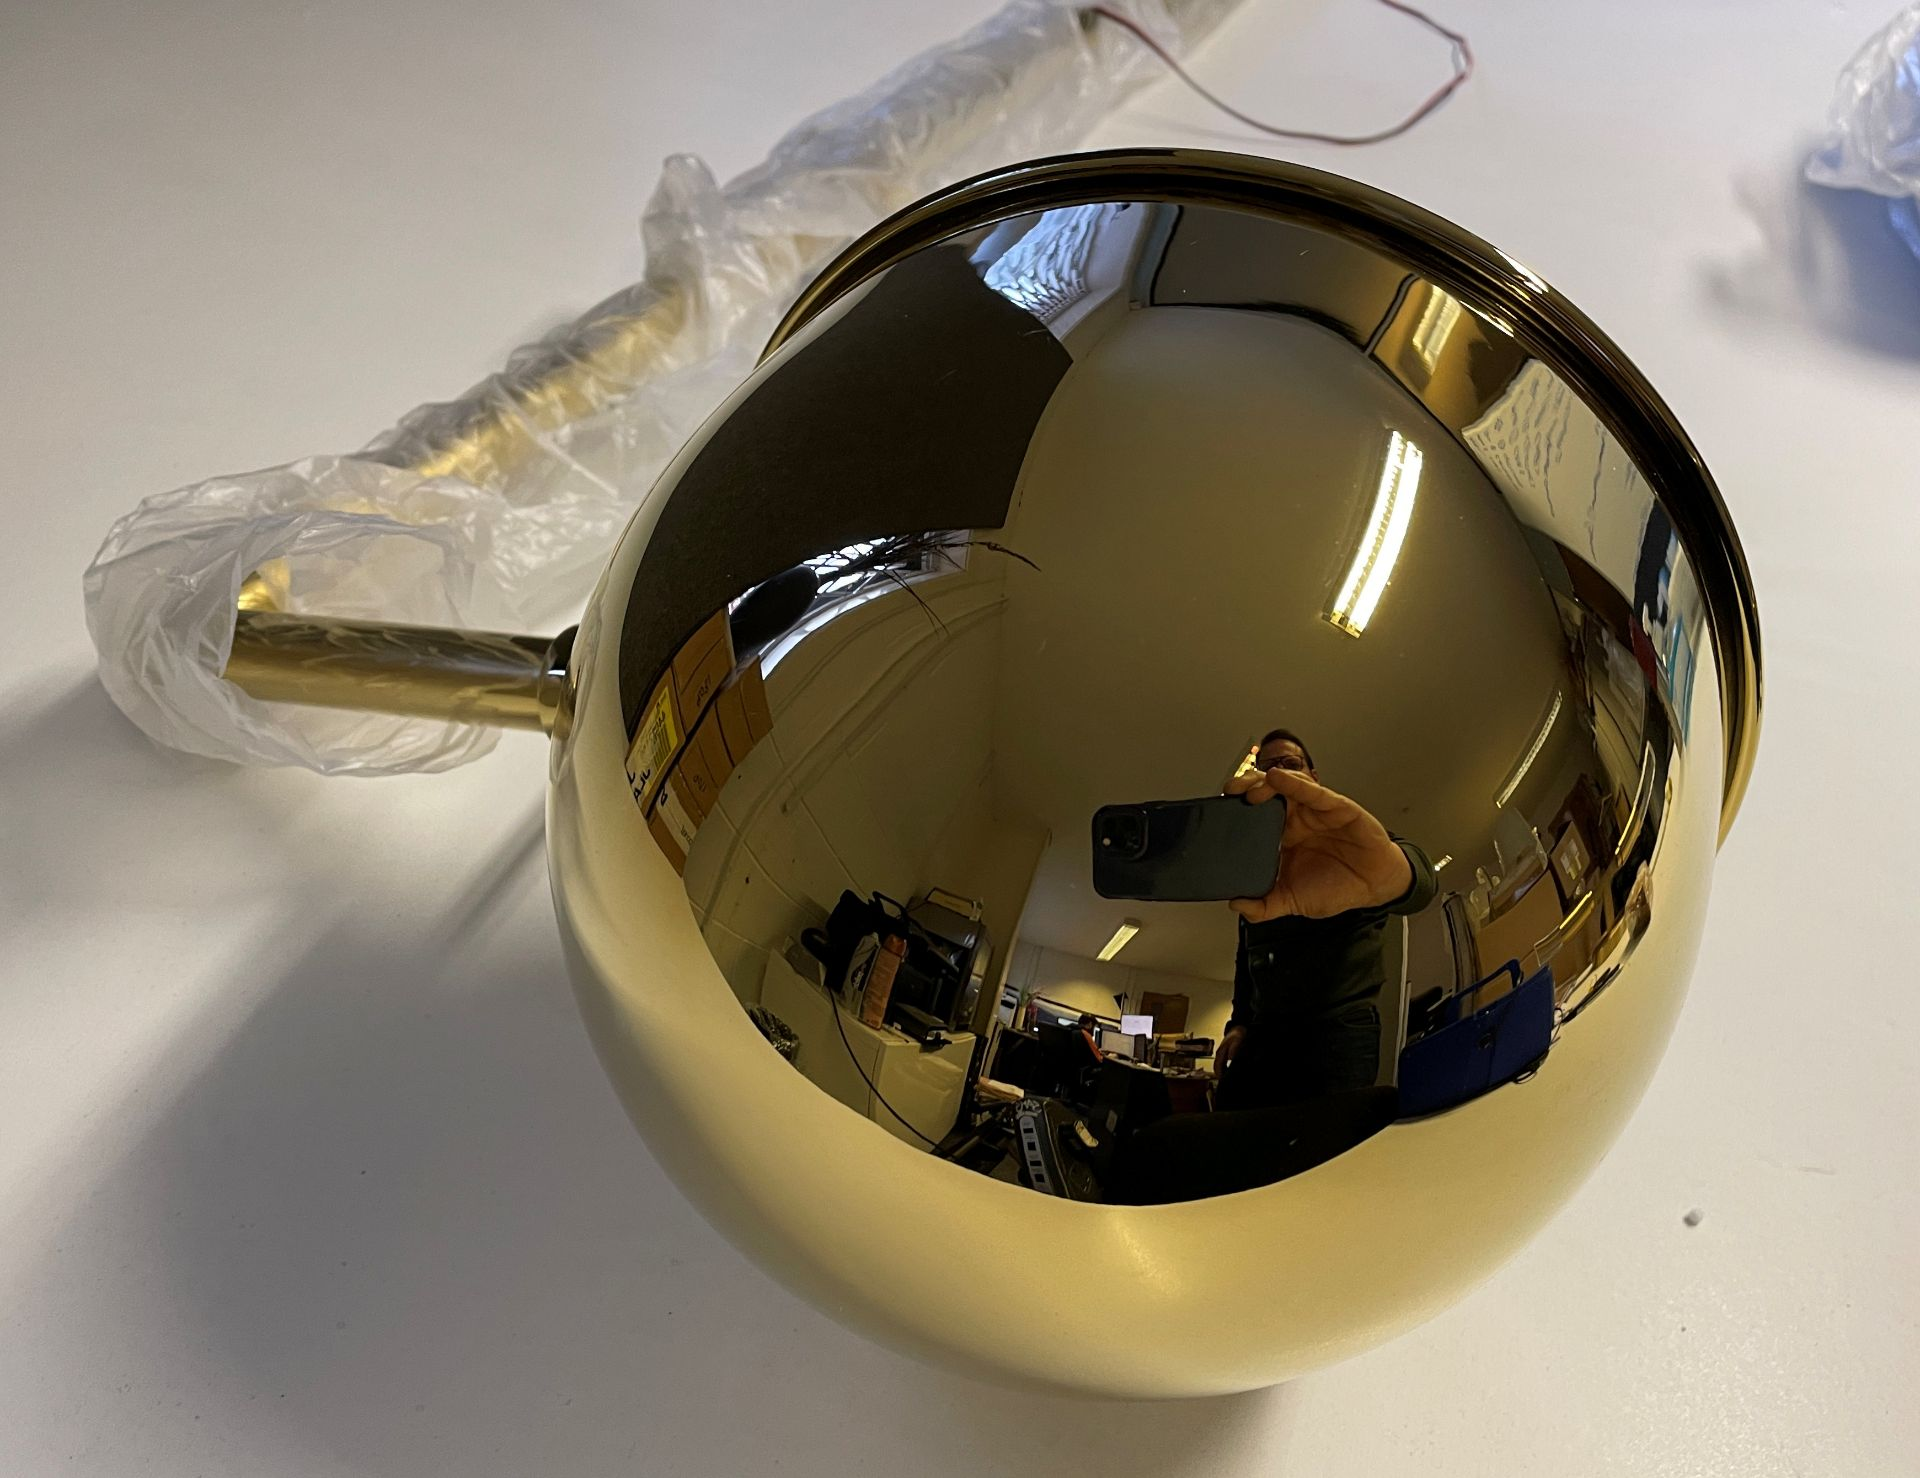 1 x Tall 119cm Polished Brass Wall Light with large adjustable round head (Diameter 21cm) with Wal - Image 6 of 18